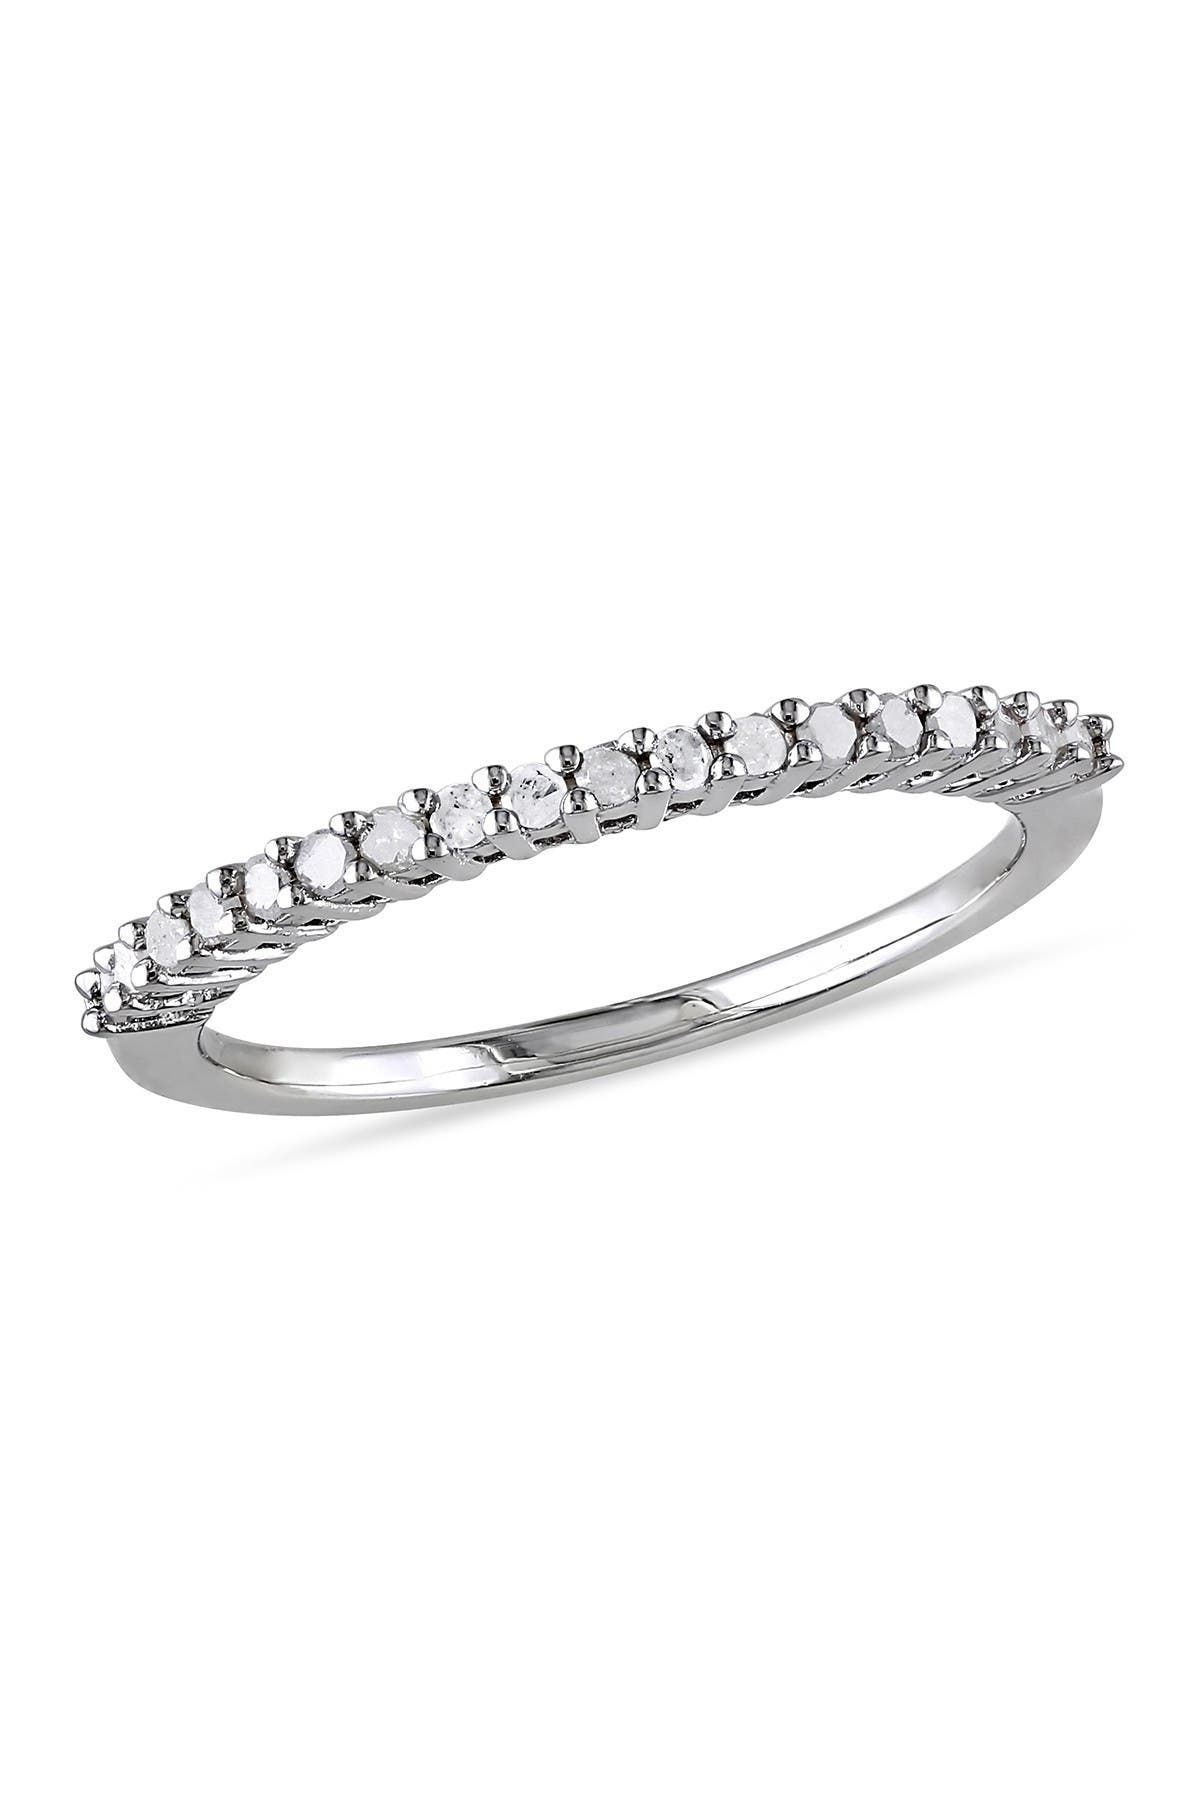 Image of Delmar Sterling Silver Diamond Anniversary Ring - 0.20 ctw